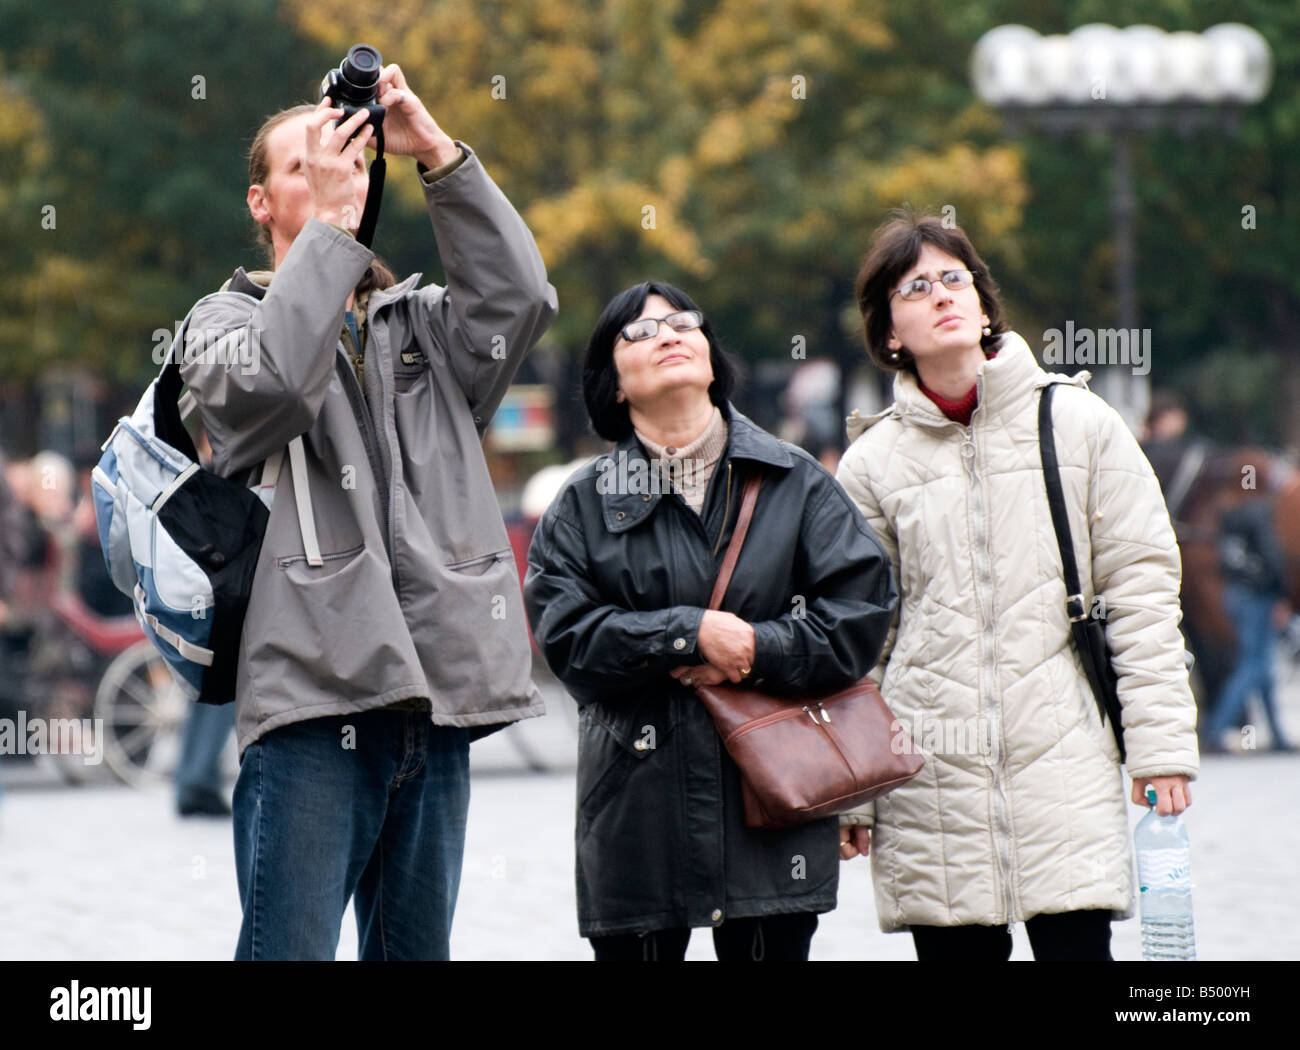 Prague Tourists and Tourism in the Old Town Square FOR EDITORIAL USE ONLY - Stock Image